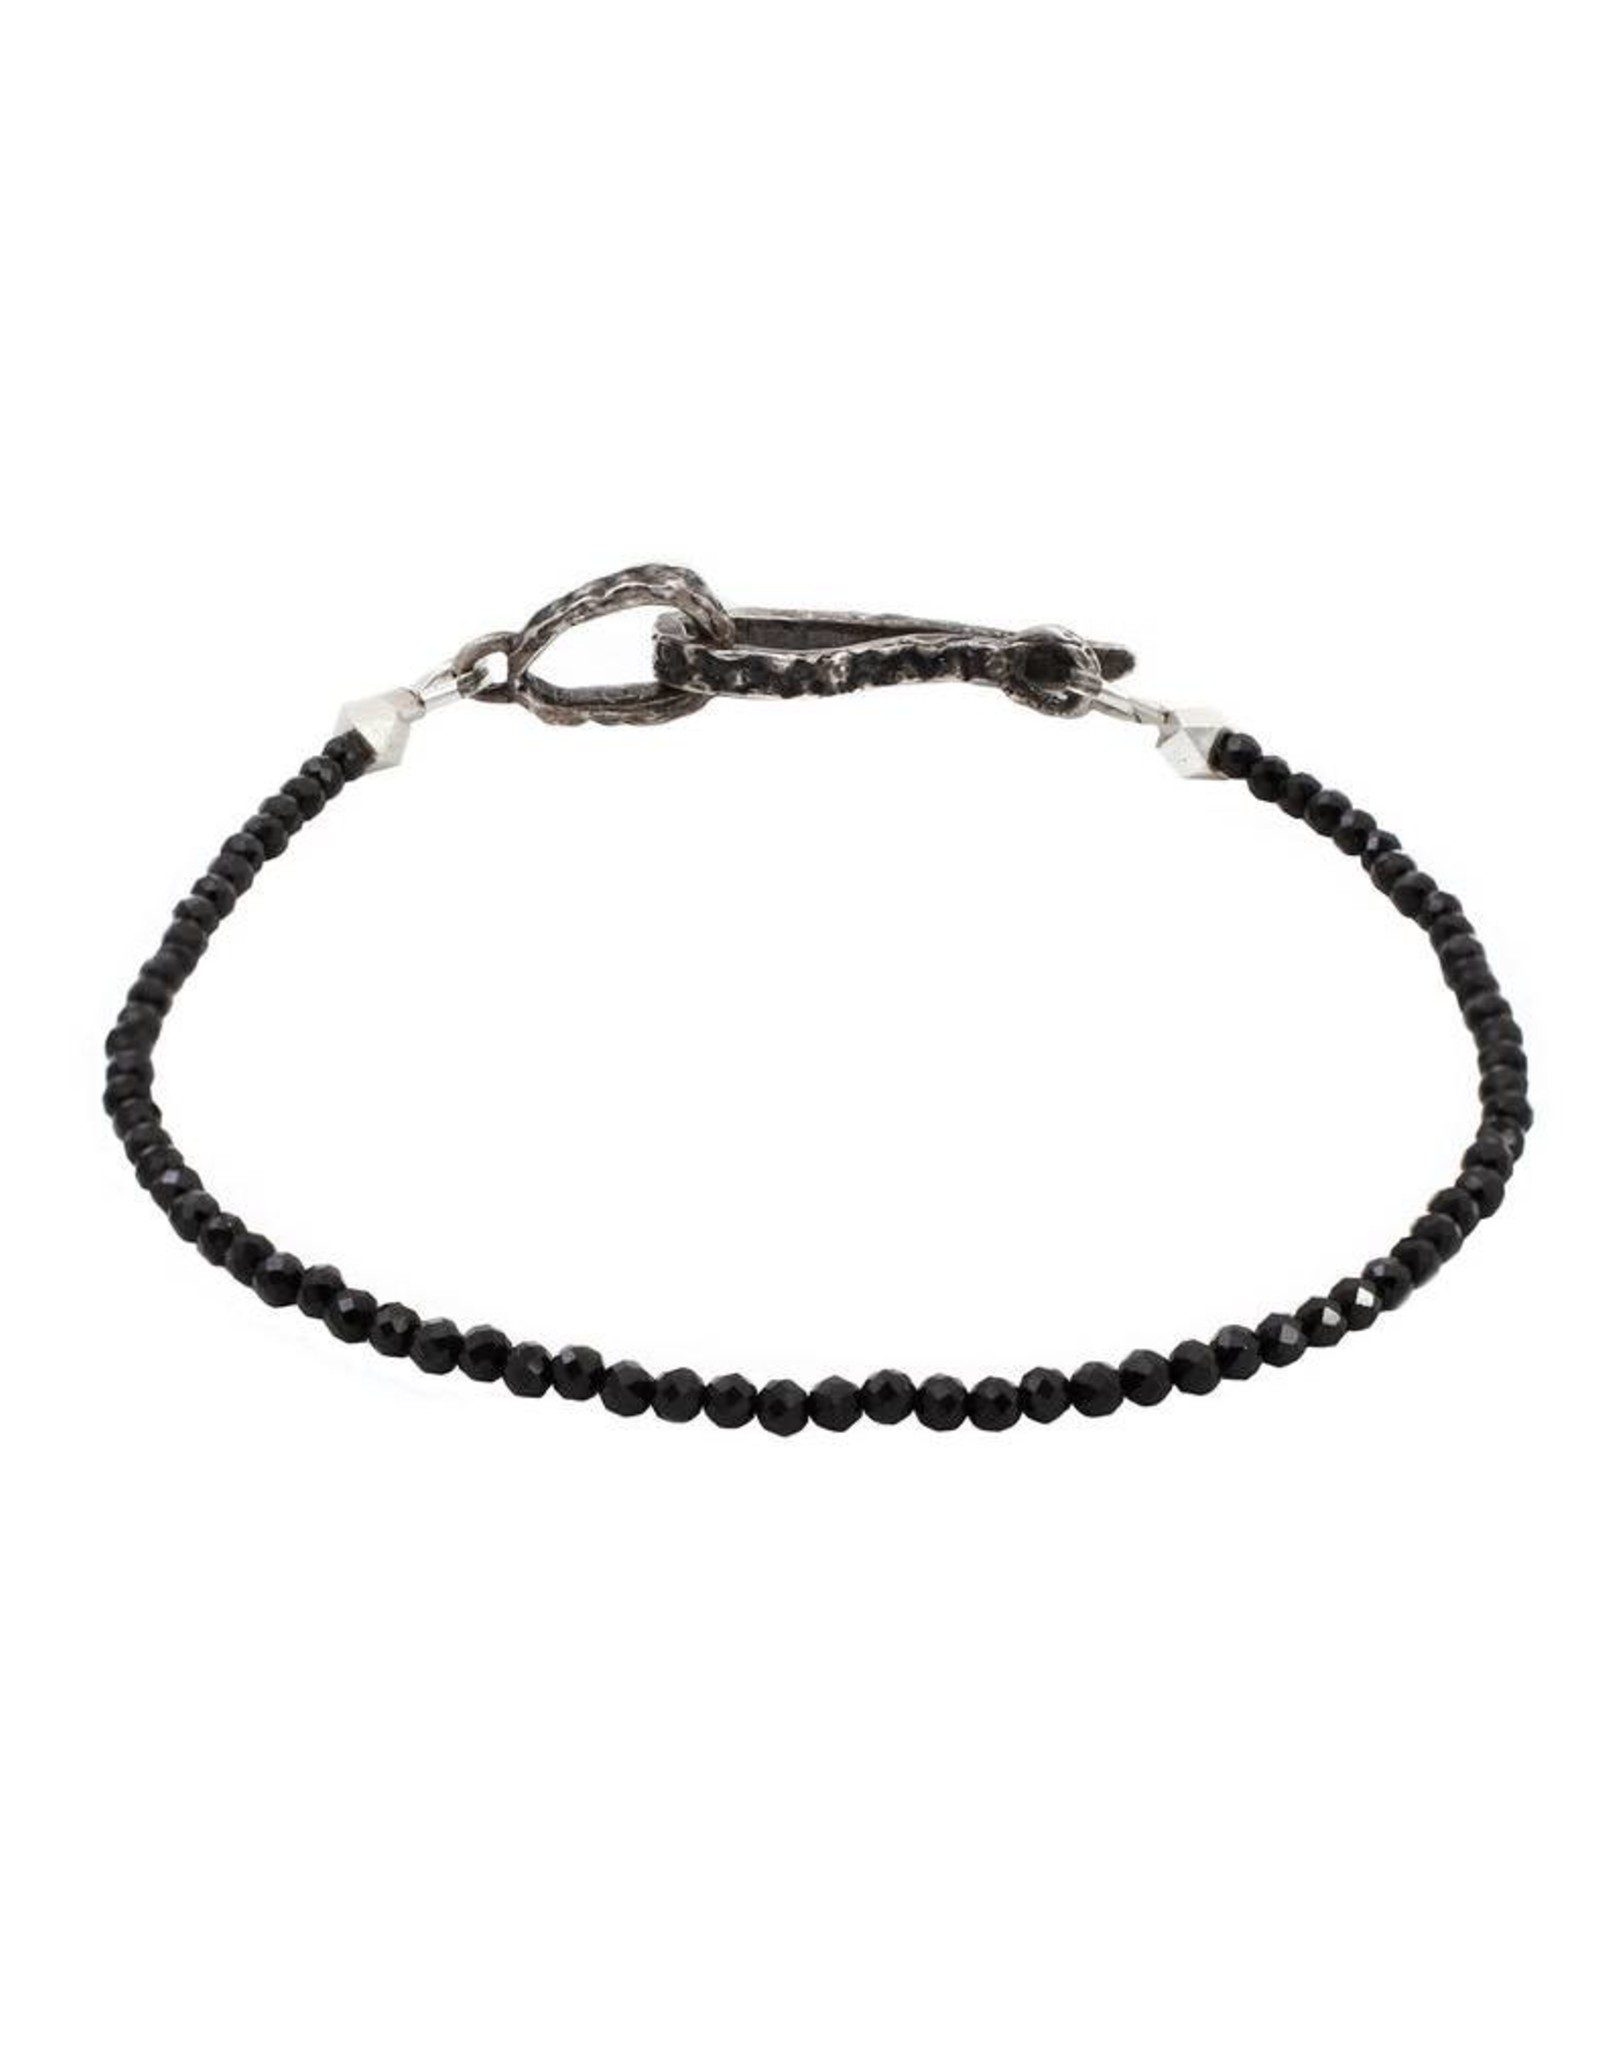 Lauren Wolf Jewelry Strand Bracelet - Black Spinel